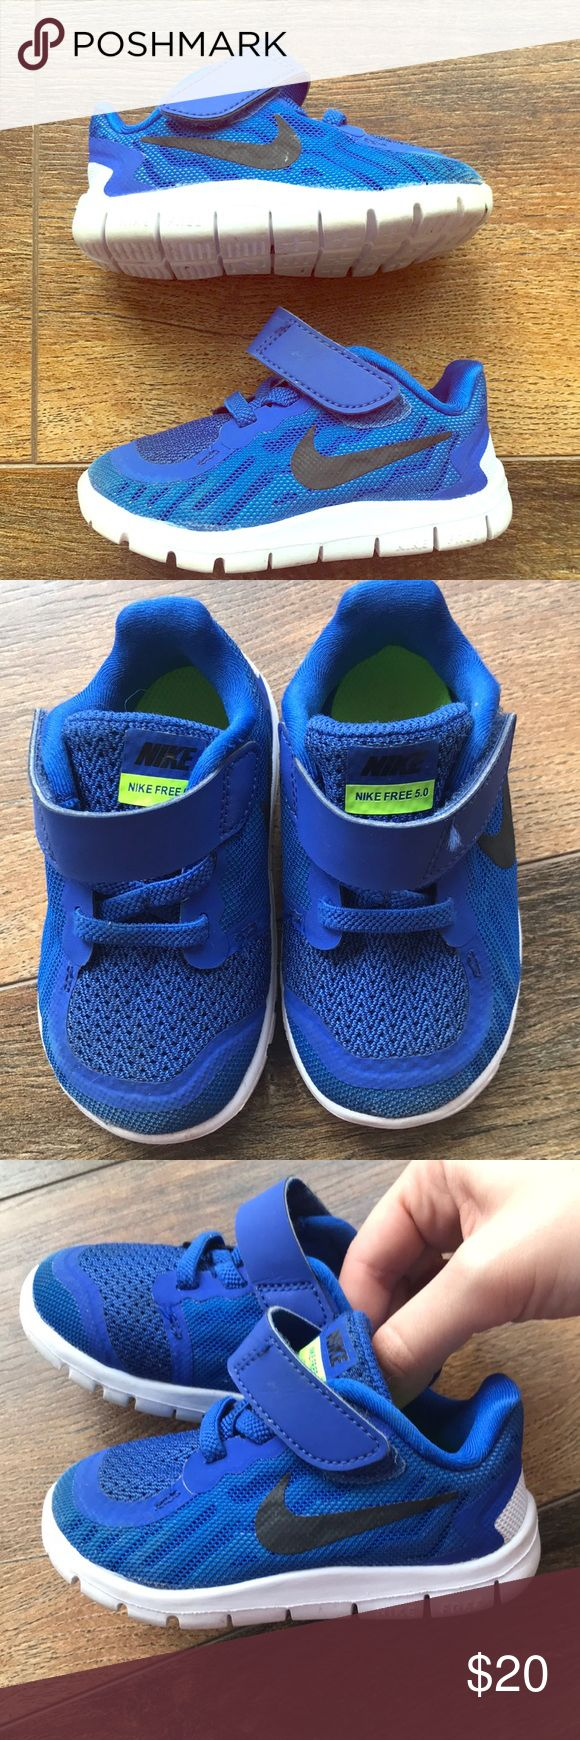 Toddler NIKE shoes! NiIKE Free 5.0 for your toddler! So cute! Great condition! For boy or girl :) size 5c Nike Shoes Athletic Shoes